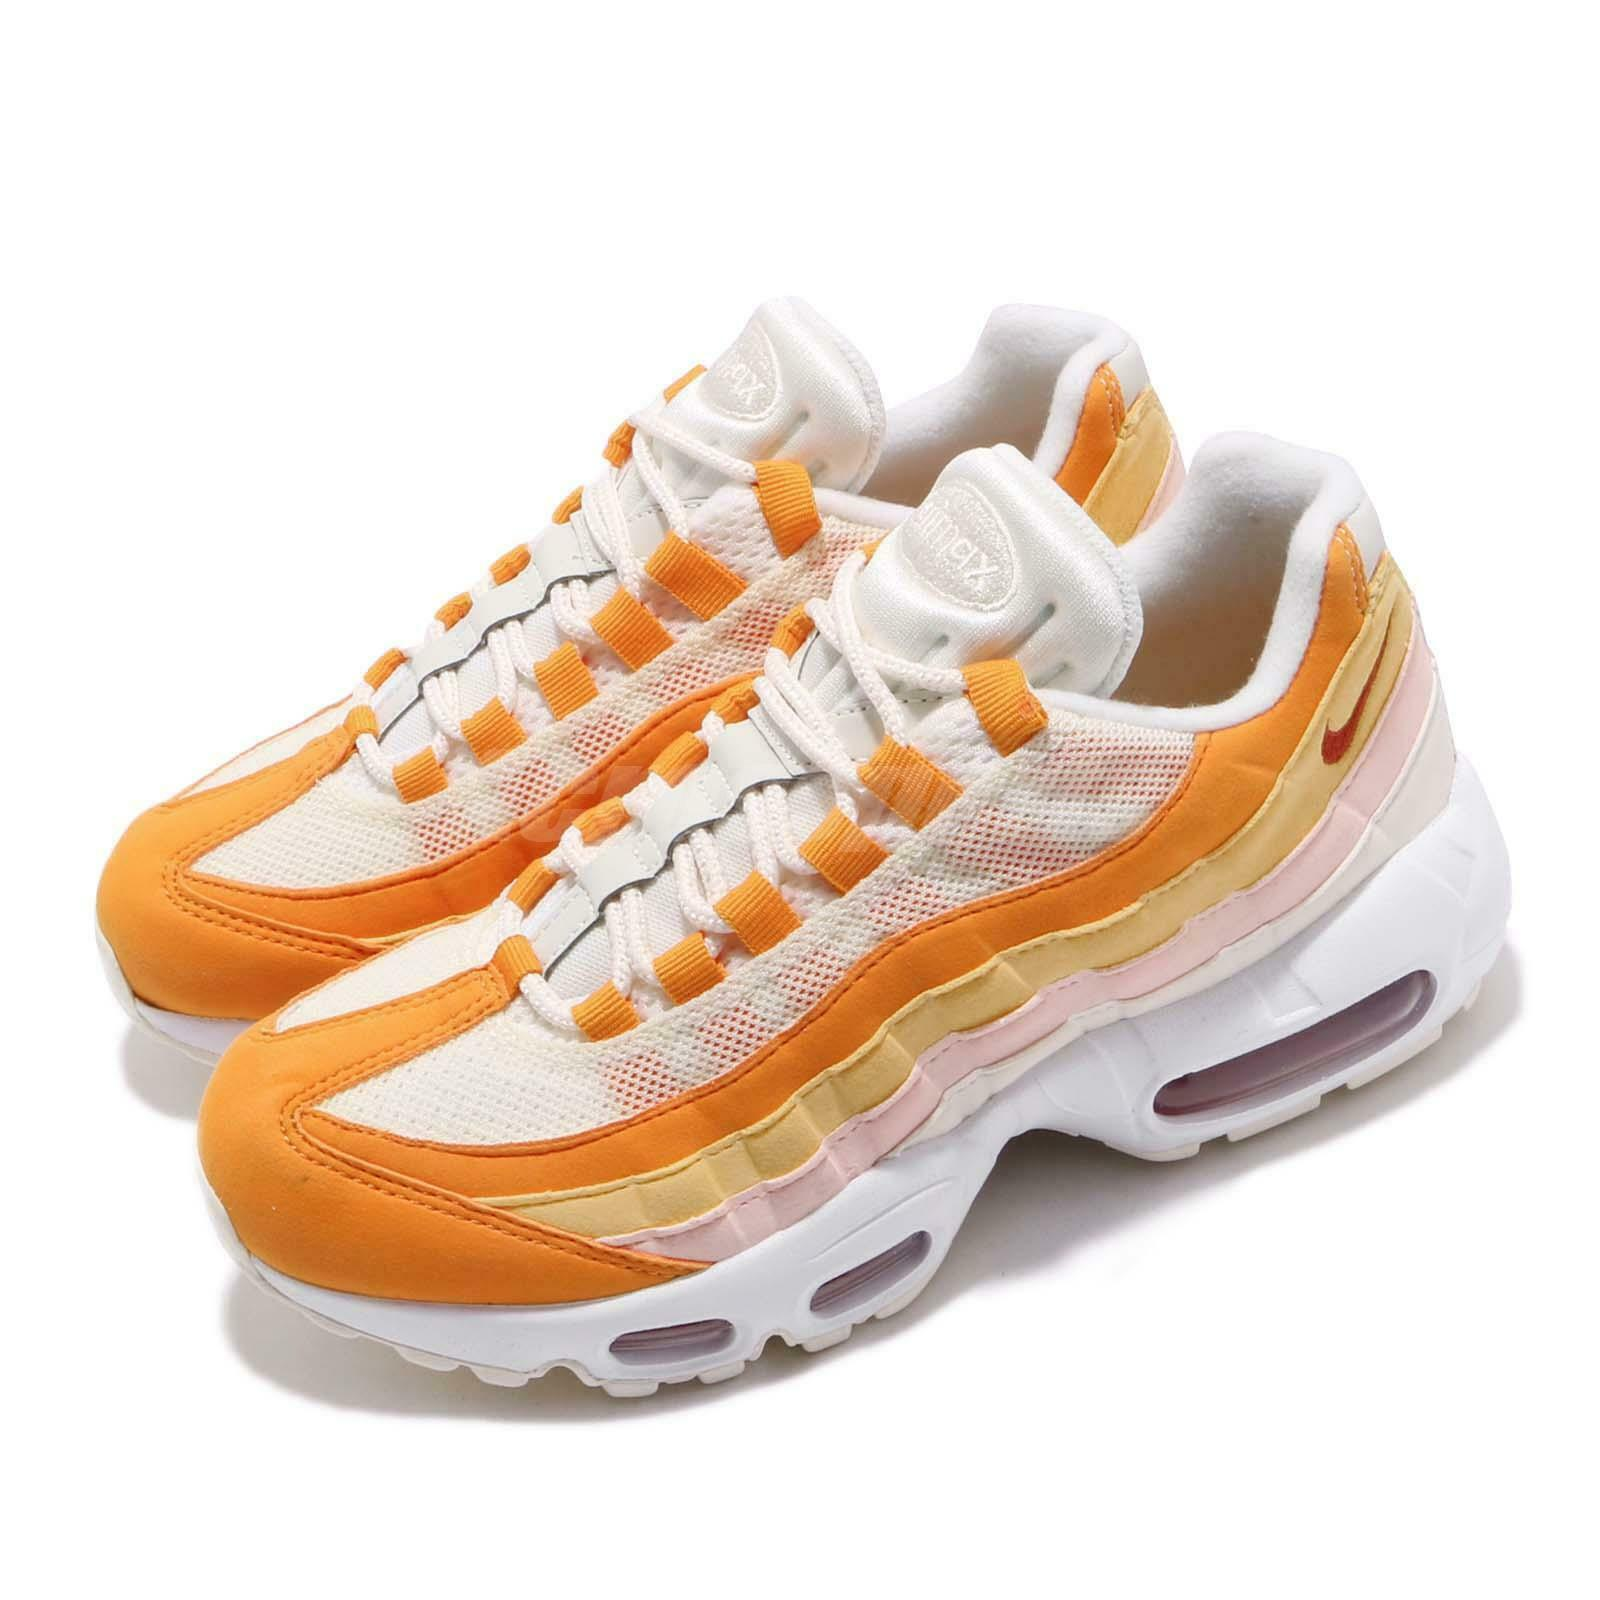 Nike Wmns Air Max 95 Bacon orange Ivory Pink Womens Running shoes 307960-114